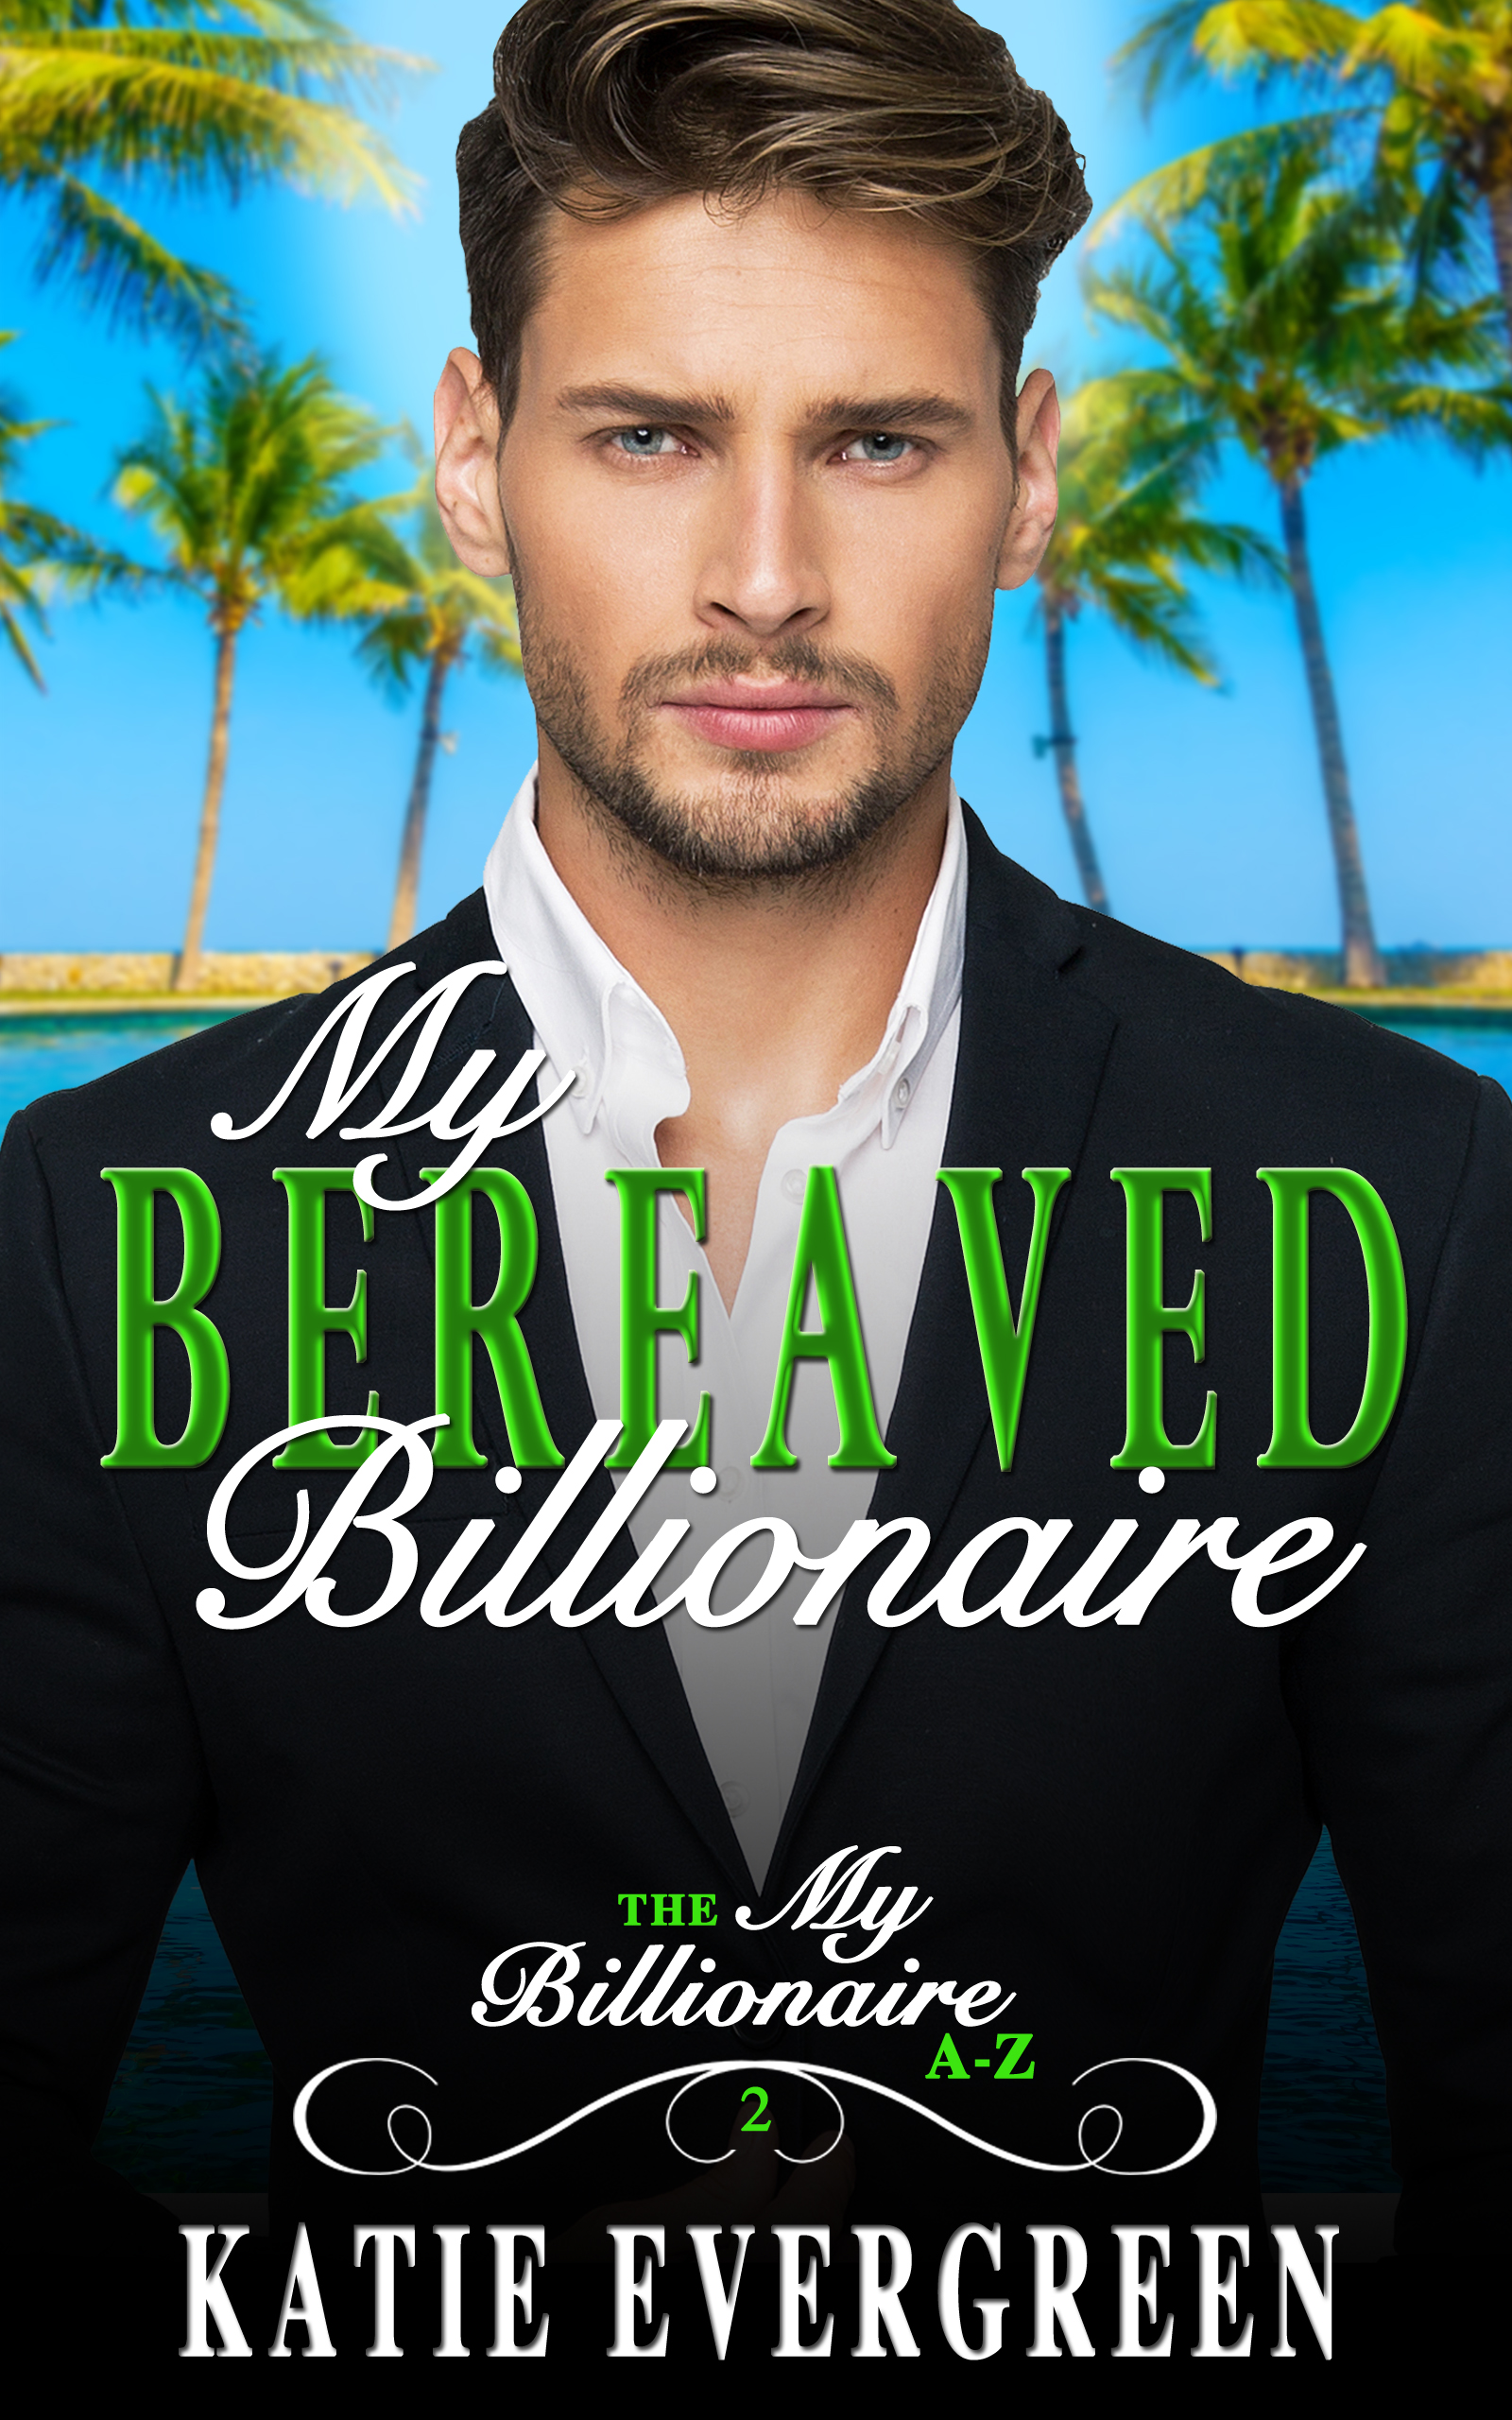 My Bereaved Billionaire. - Life has given them a shot at being happy, will either of them be brave enough to take it?